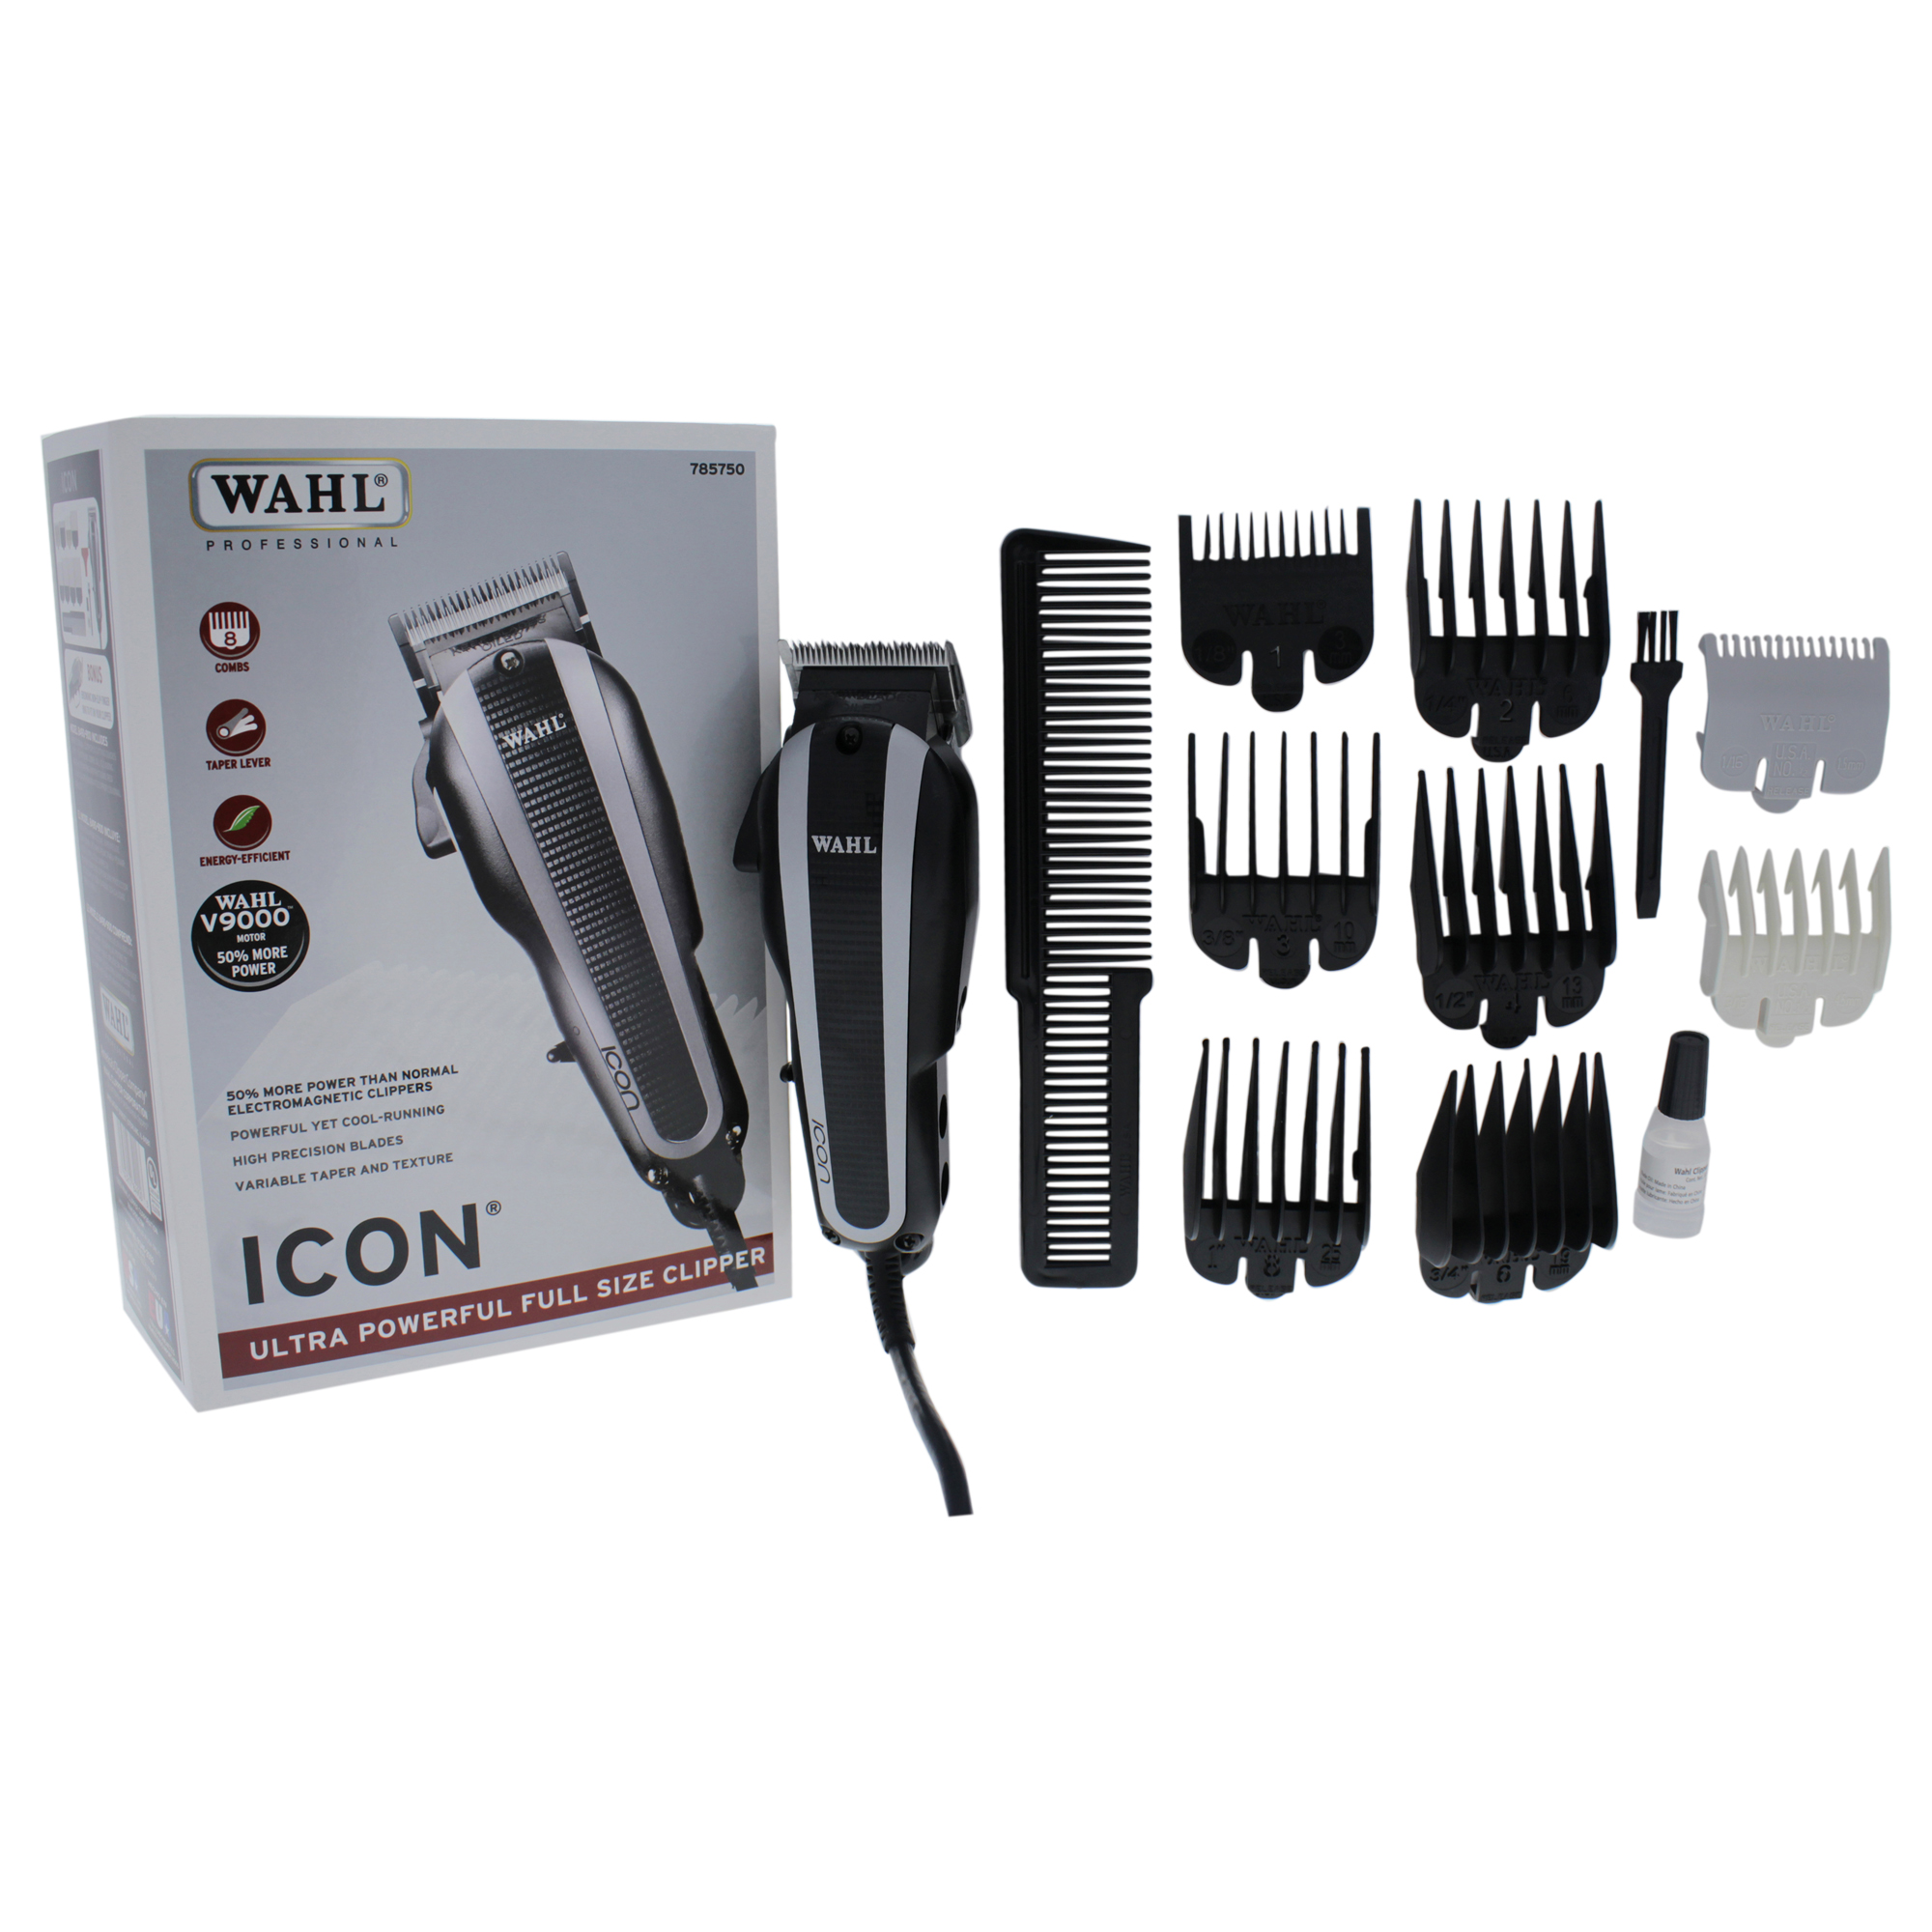 WAHL Professional Icon Ultra Powerful Full Size Clipper - Model # 8490-900 - Black/Silver - 1 Pc Clipper